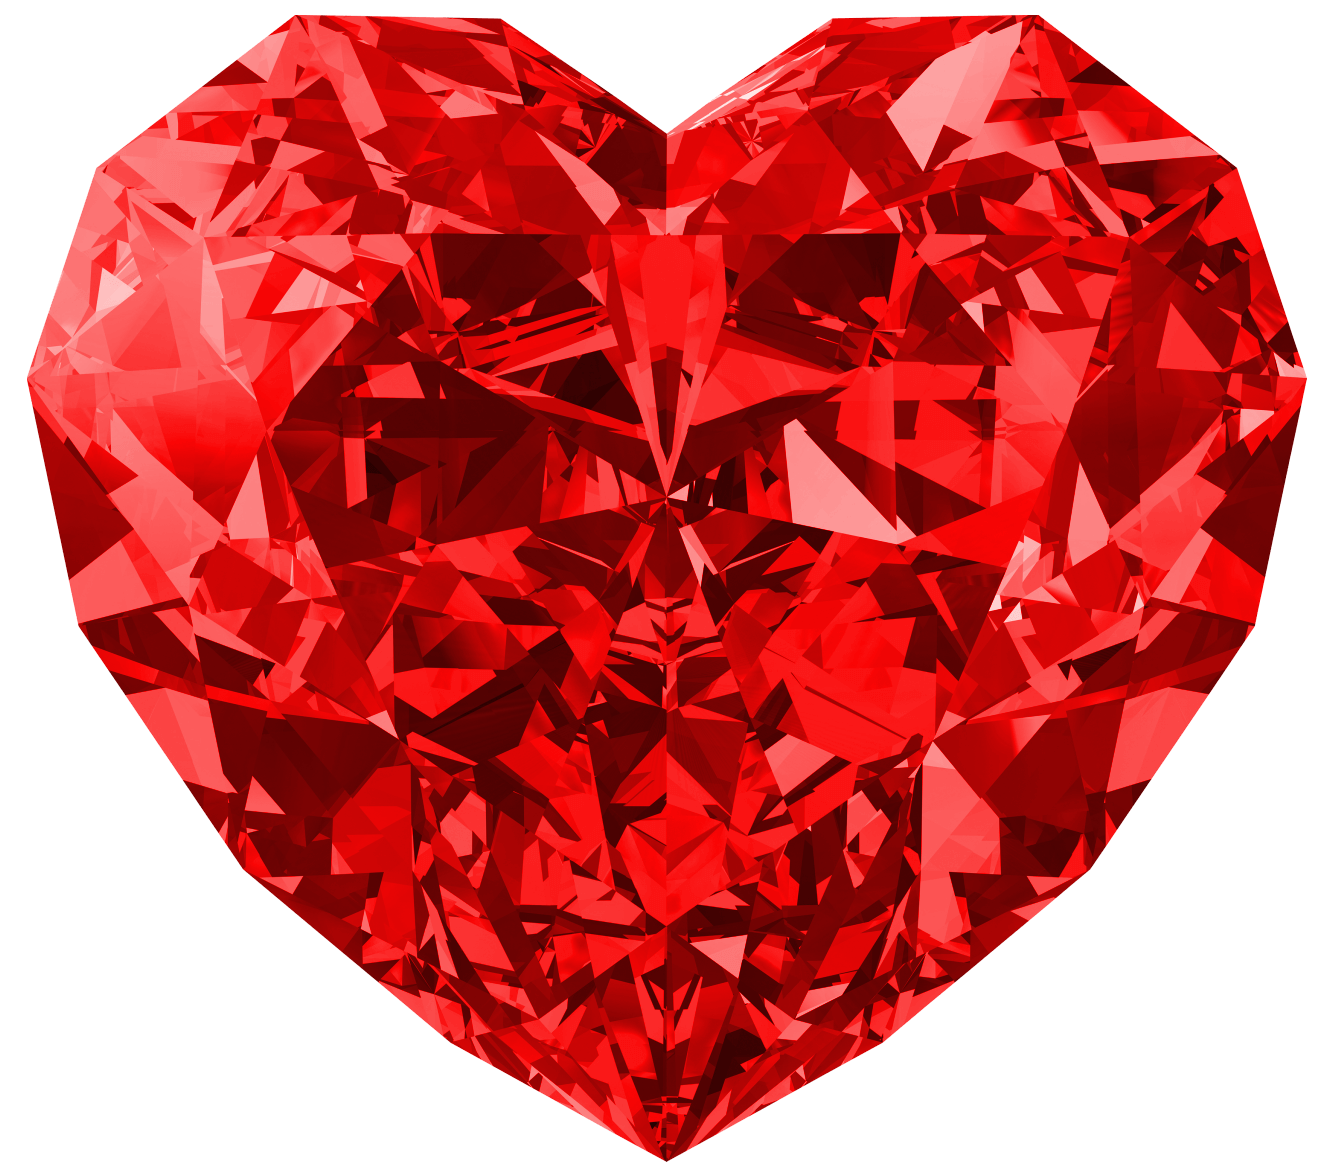 Red Heart Diamond Png Image PNG Image